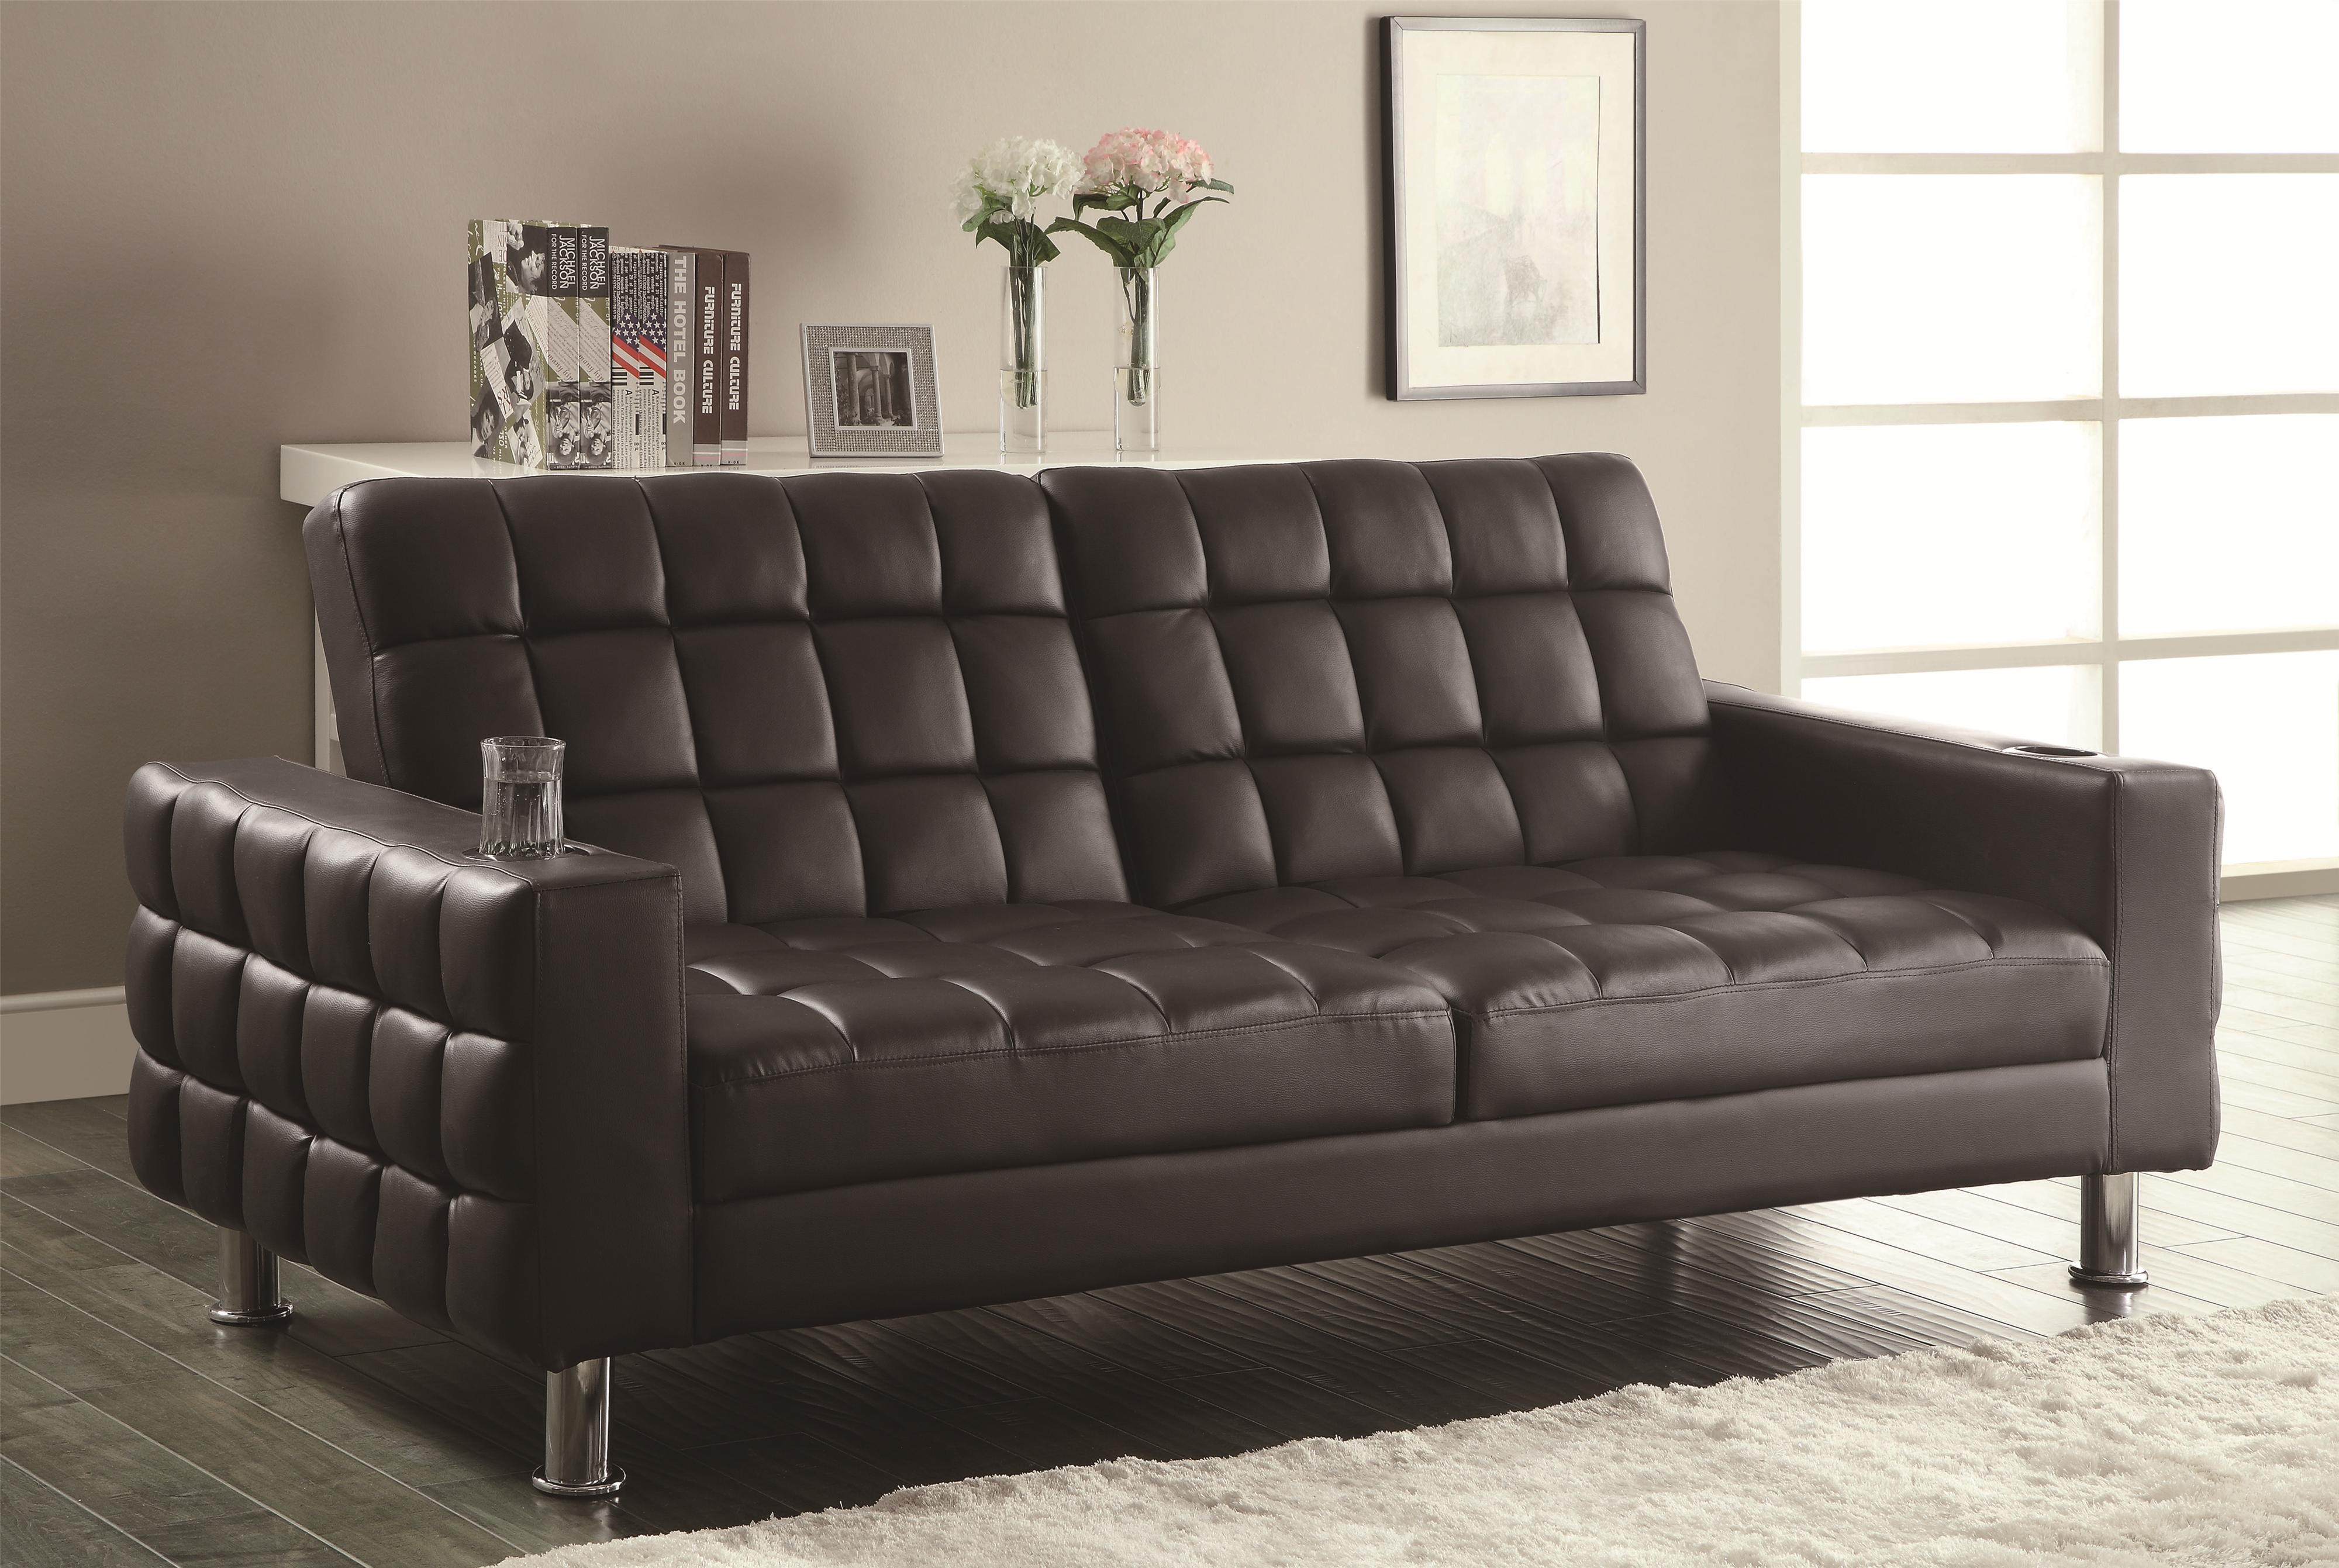 Sofa Beds and Futons Adjustable Sofa by Coaster at Northeast Factory Direct